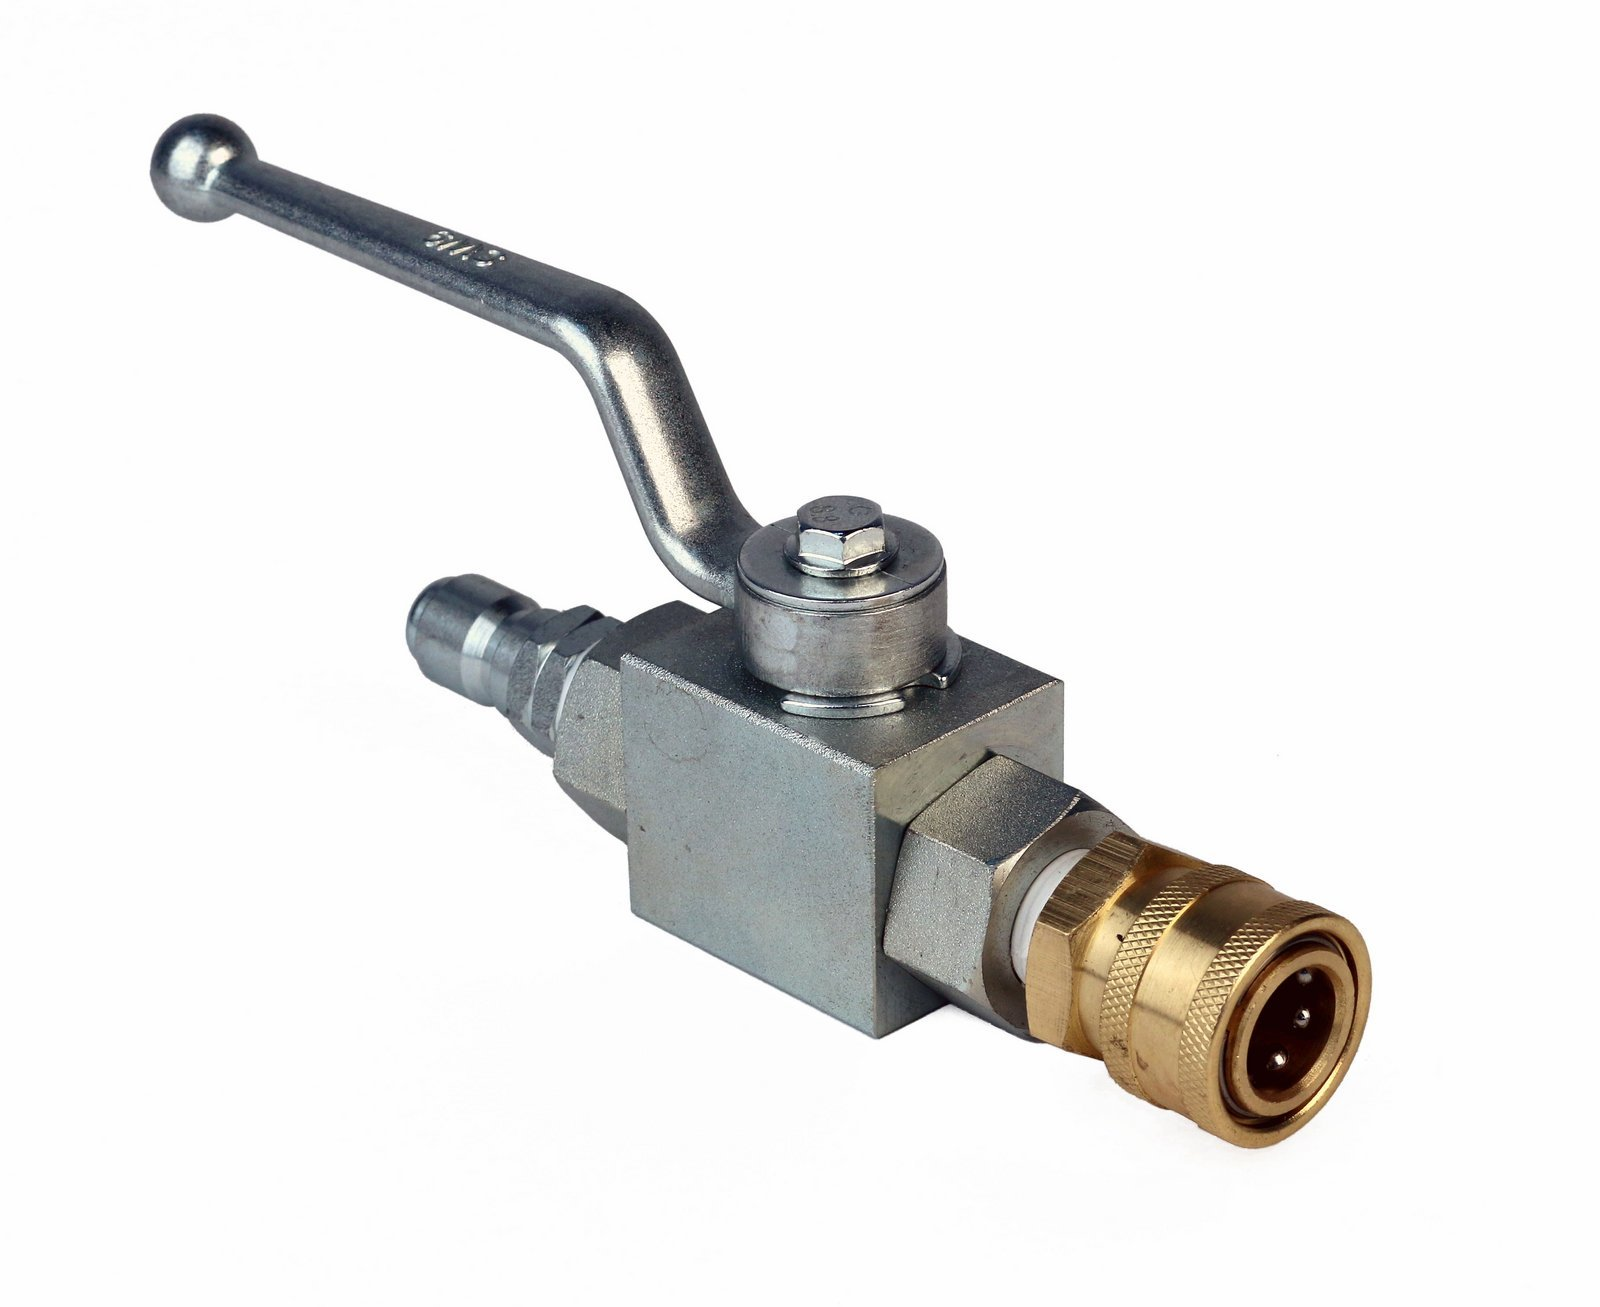 High Pressure Ball Valve Kit 3/8'' Male Plug X 3/8'' Female Quick Connect 4000PSI for High Pressure Hoses